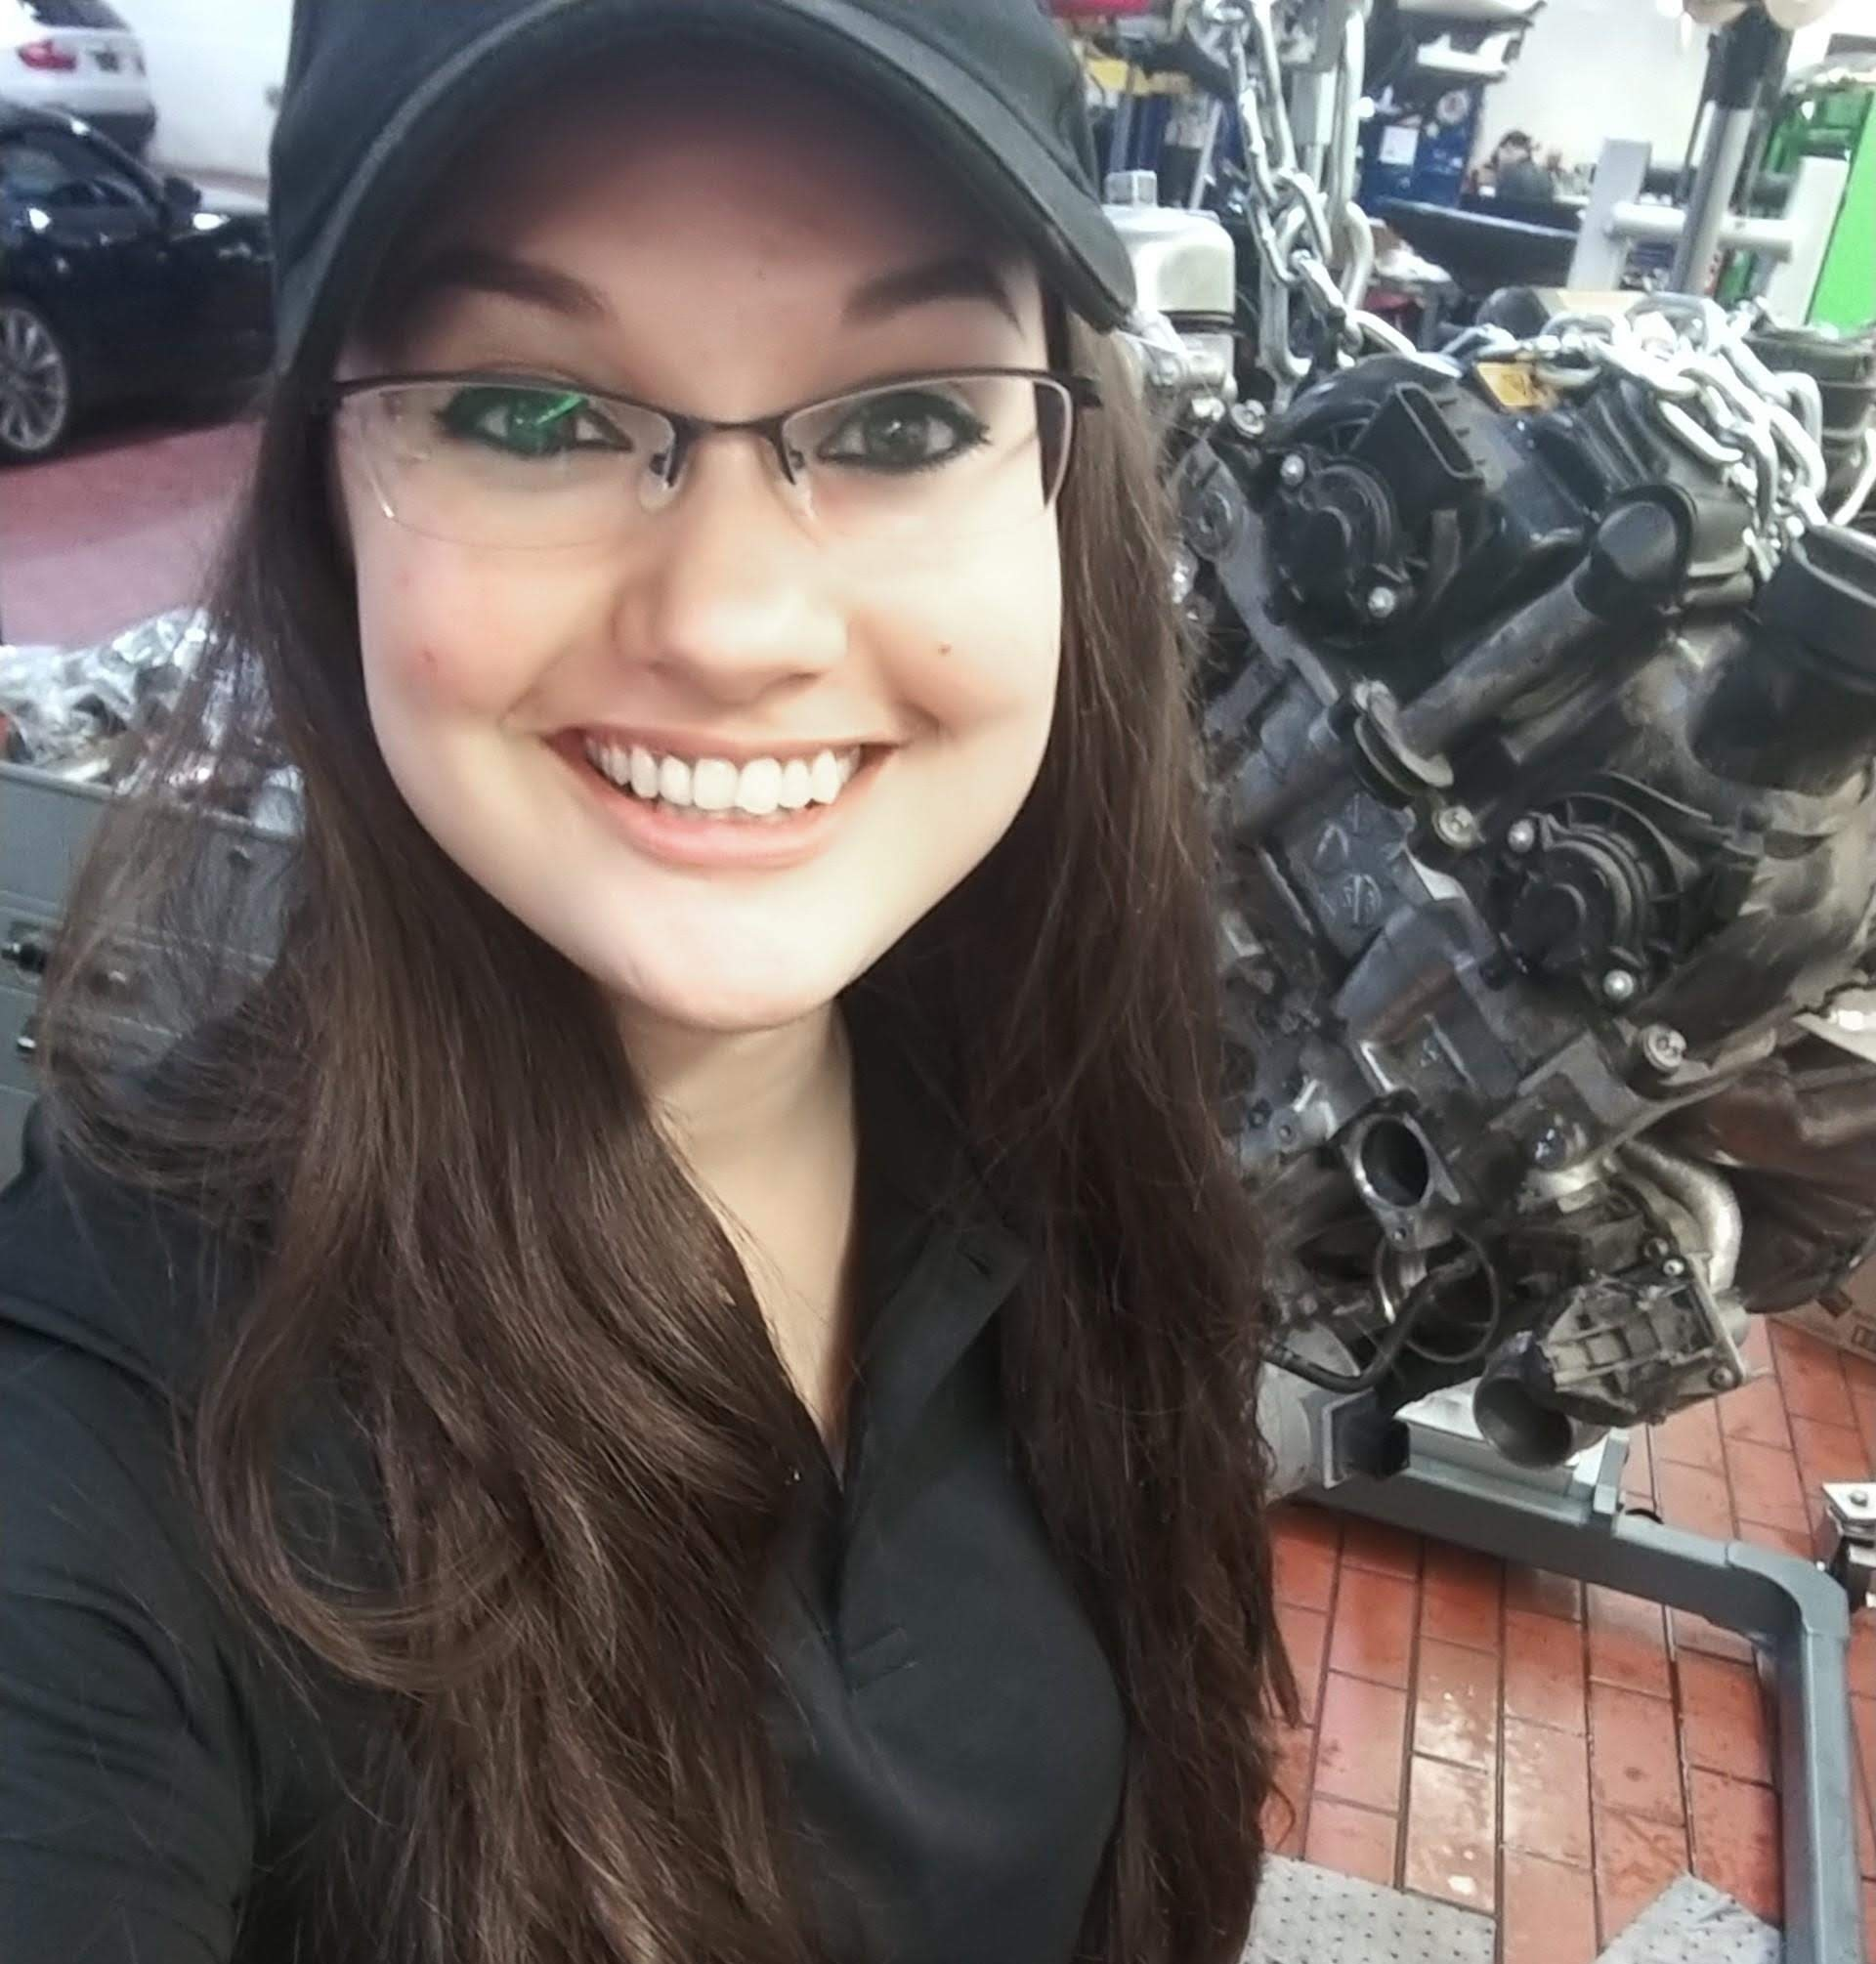 Danielle (Danni) hamilton - Level 3 Technician for BMW of San Antonio and an Adjunct Professor at St.Phillip's College teaching Introduction to Automotive.